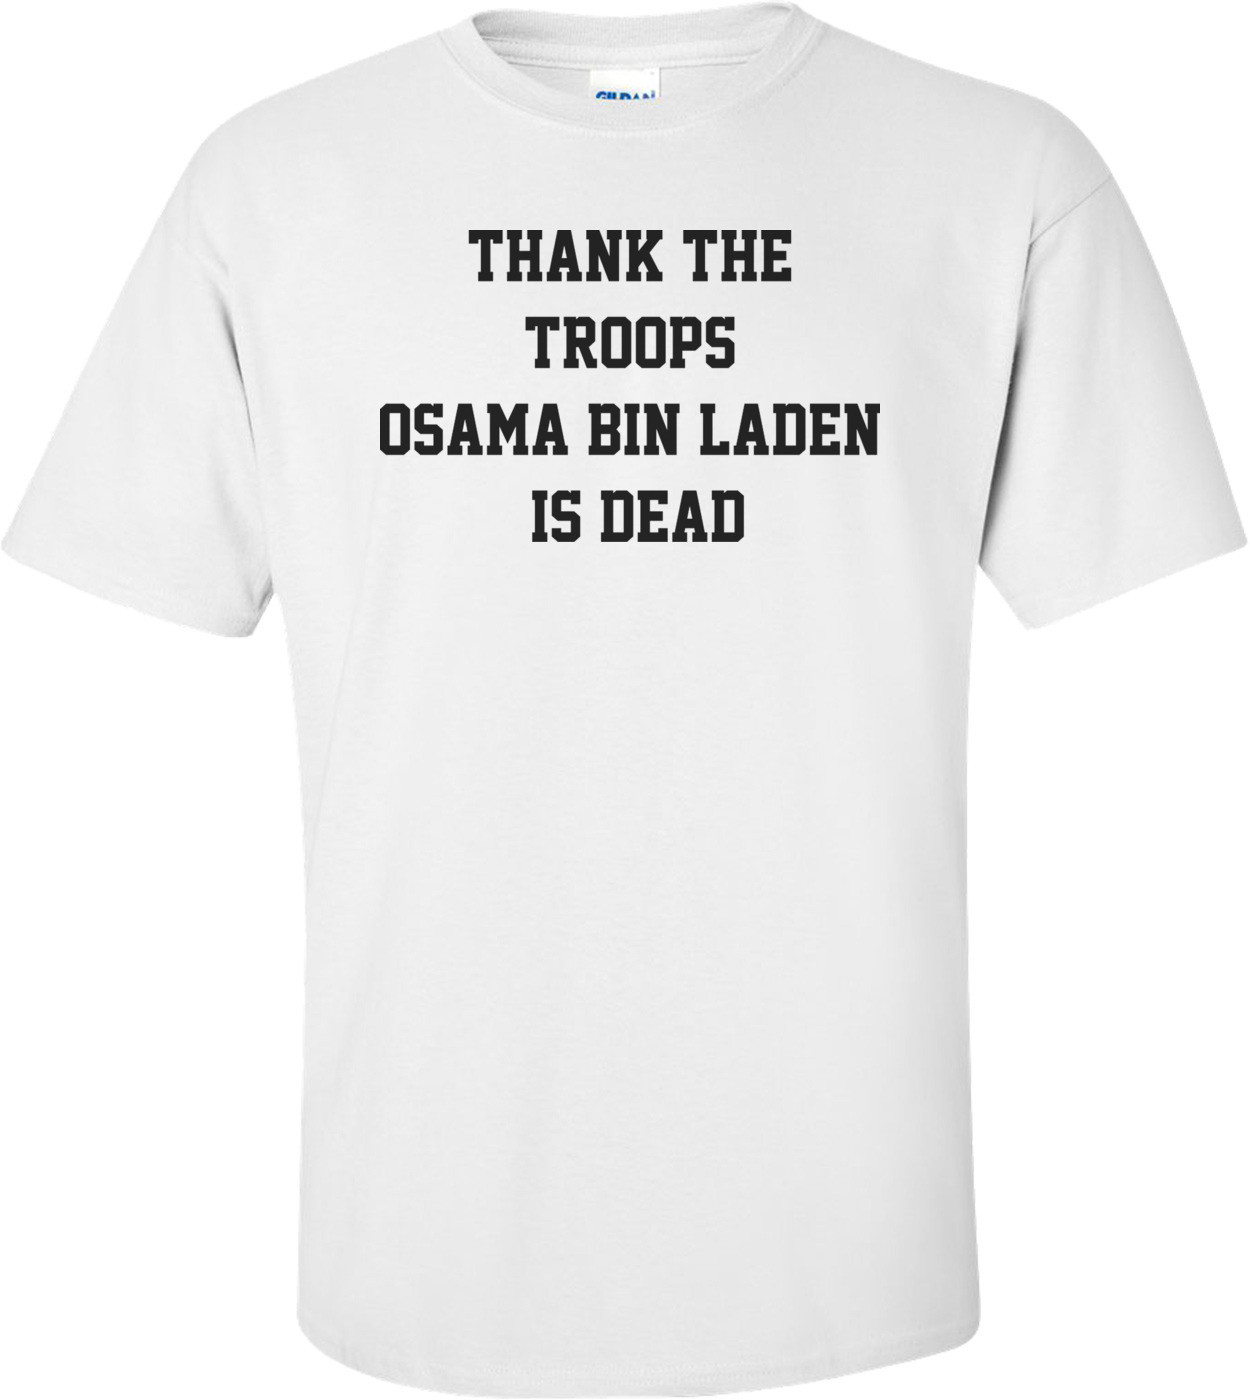 Thank The Troops - Osama Bin Laden Is Dead Shirt